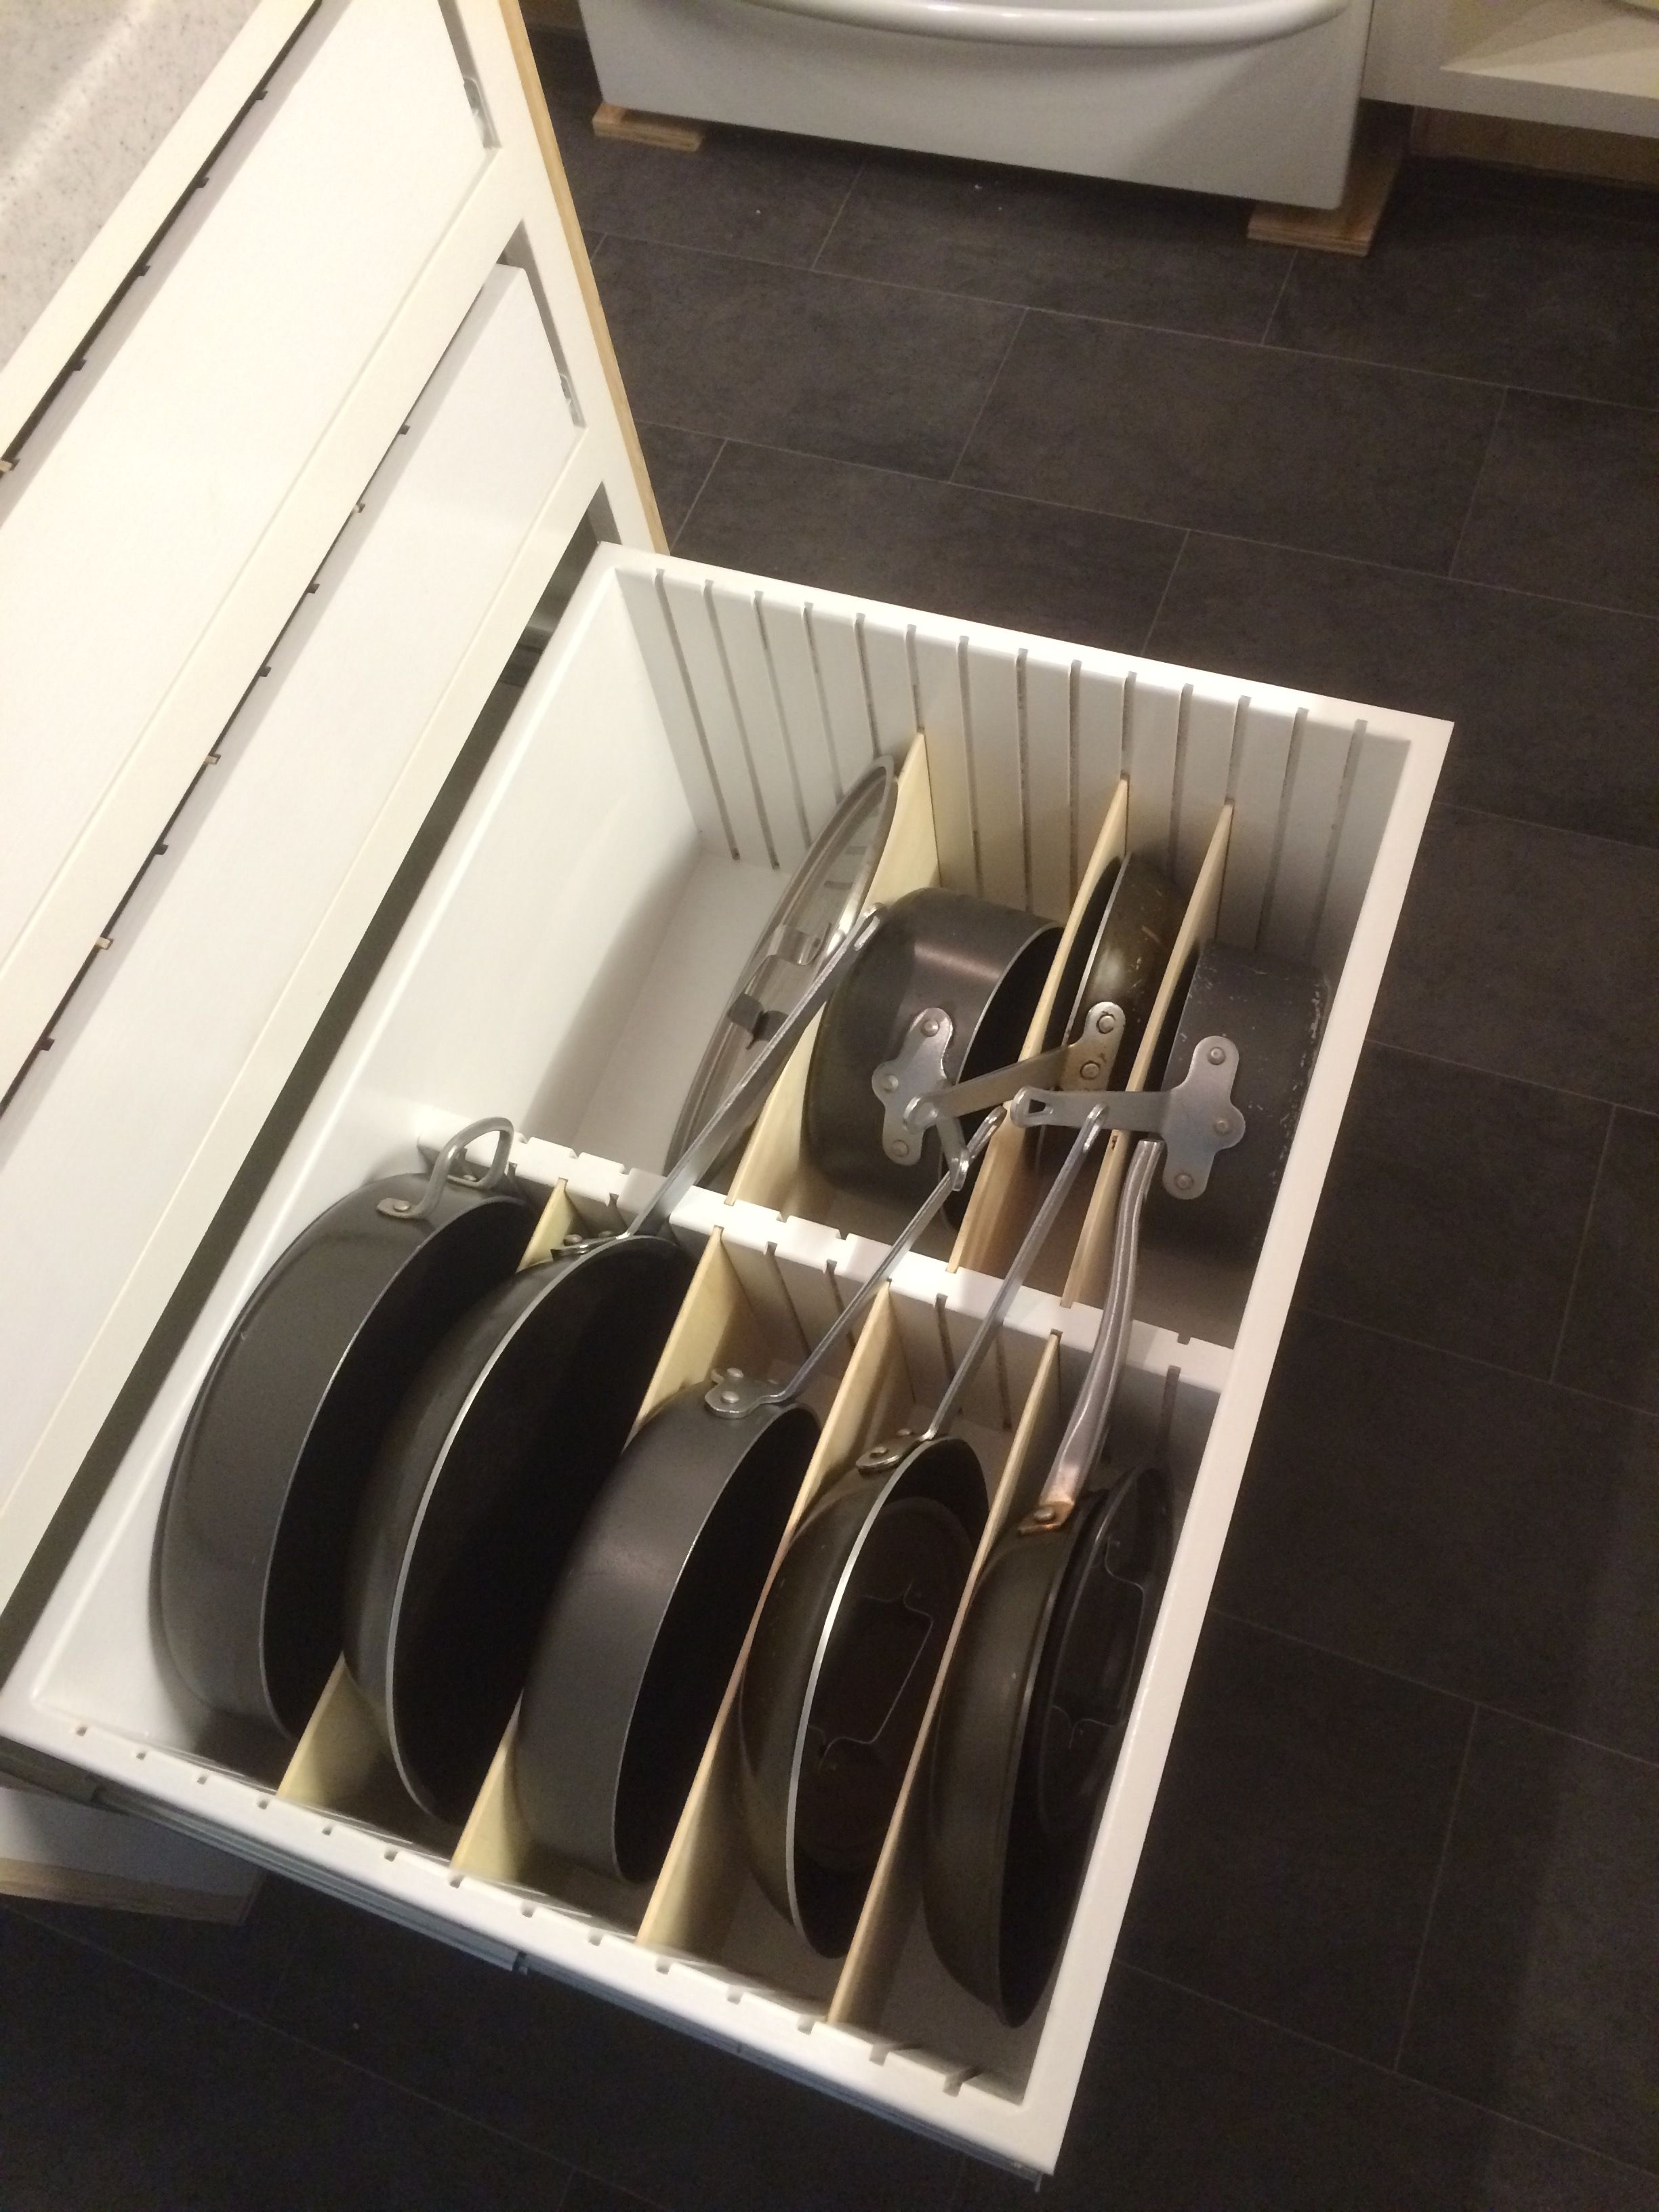 Adjustable Pot And Pan Storage Drawer I Made For My Wife Interior Design Kitchen Kitchen Interior Pan Storage